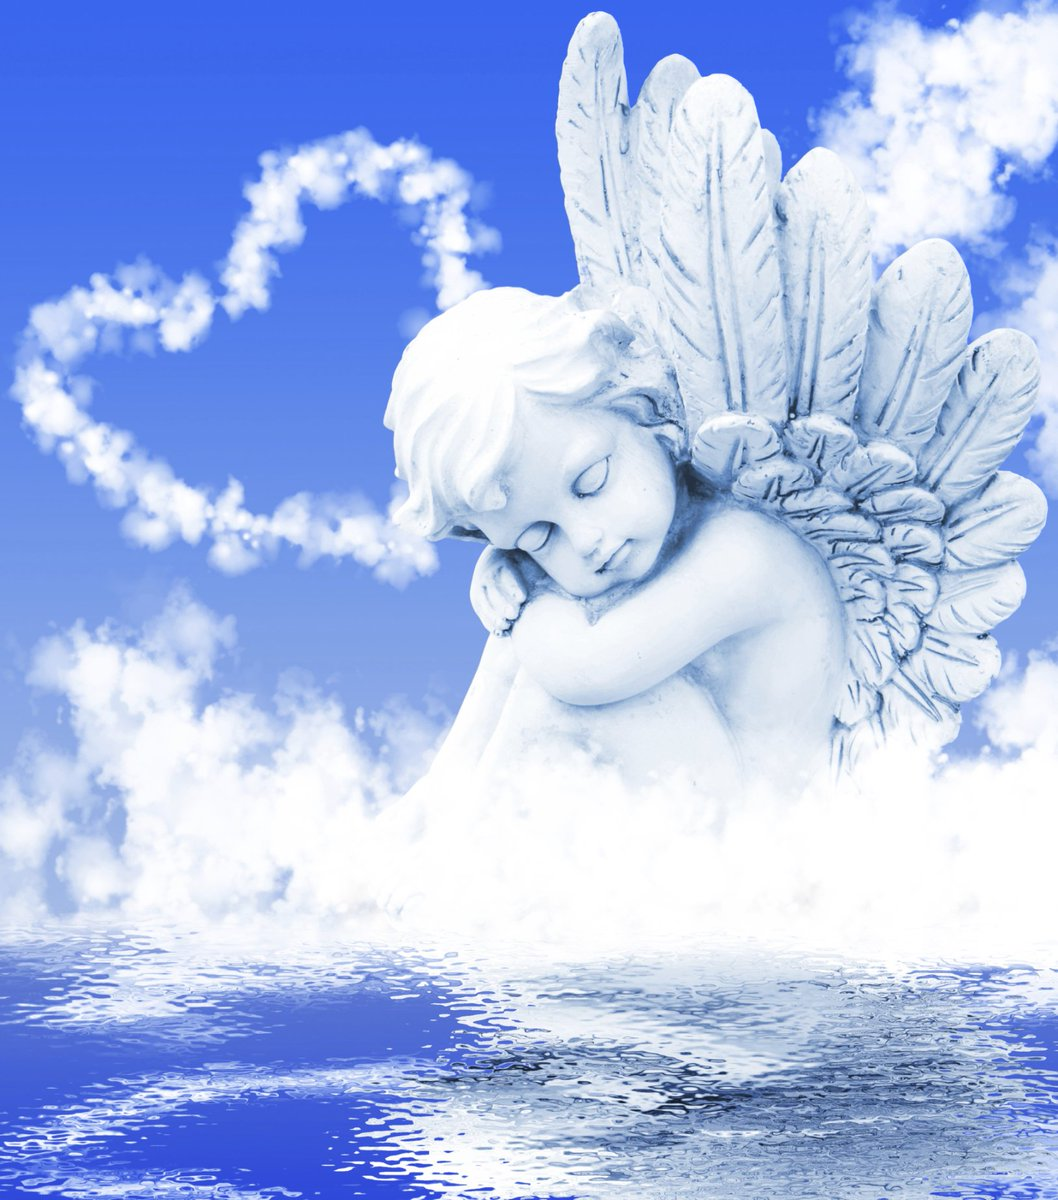 Angelic Healing Practitioner - Messages From Your Angels   http://www. brendarachel4angels.com  &nbsp;   #angels #guidance #healing #purpose #direction<br>http://pic.twitter.com/E8s0rT0HMC